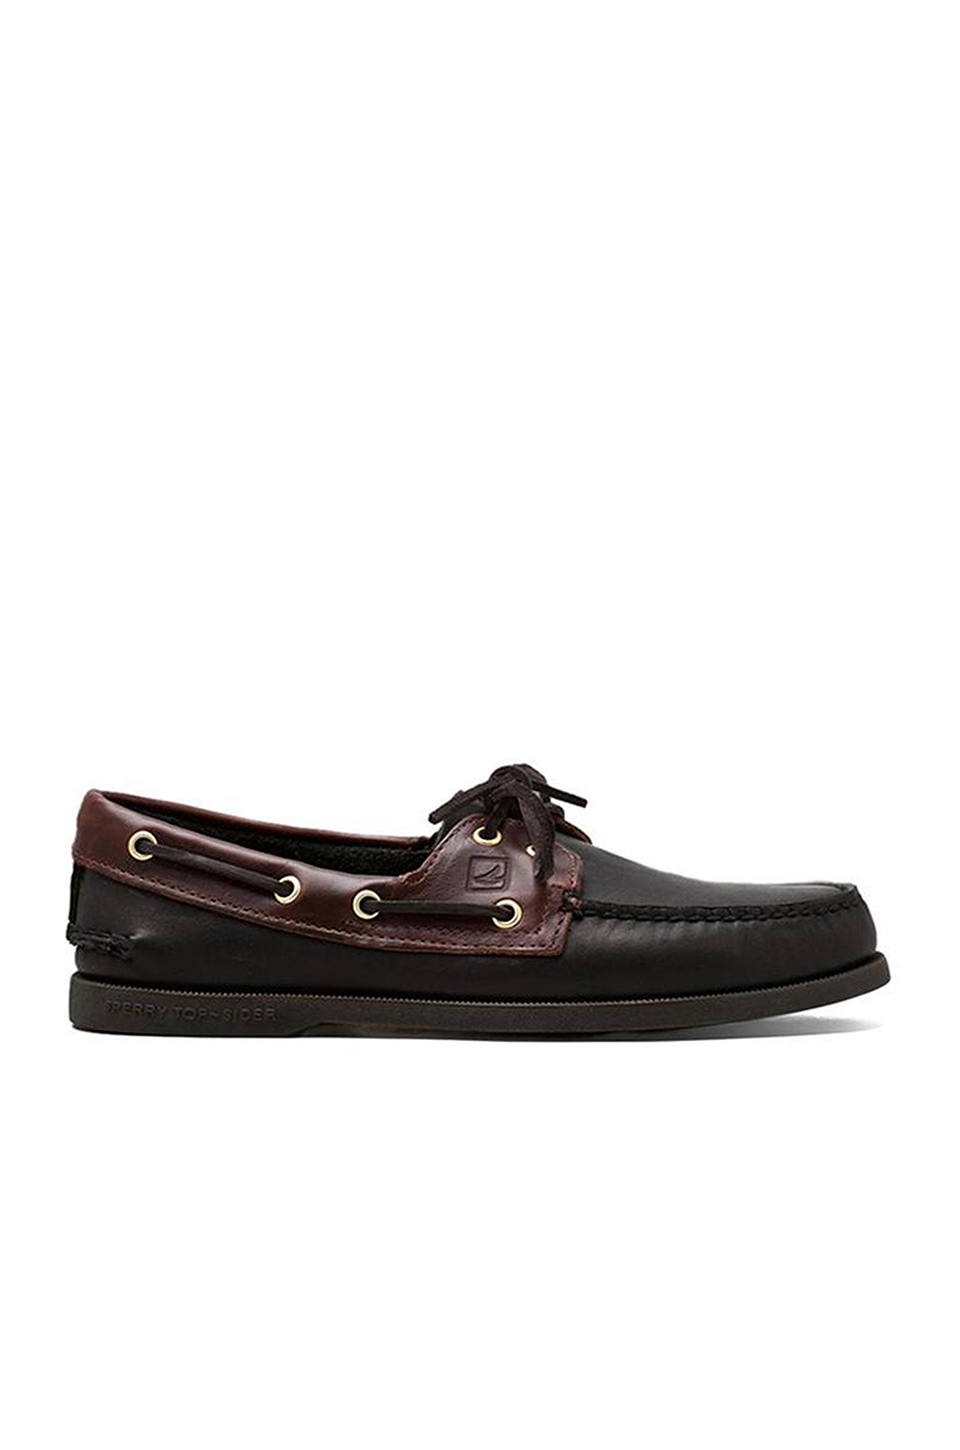 Sperry Top-Sider A/O in Black/Amaretto